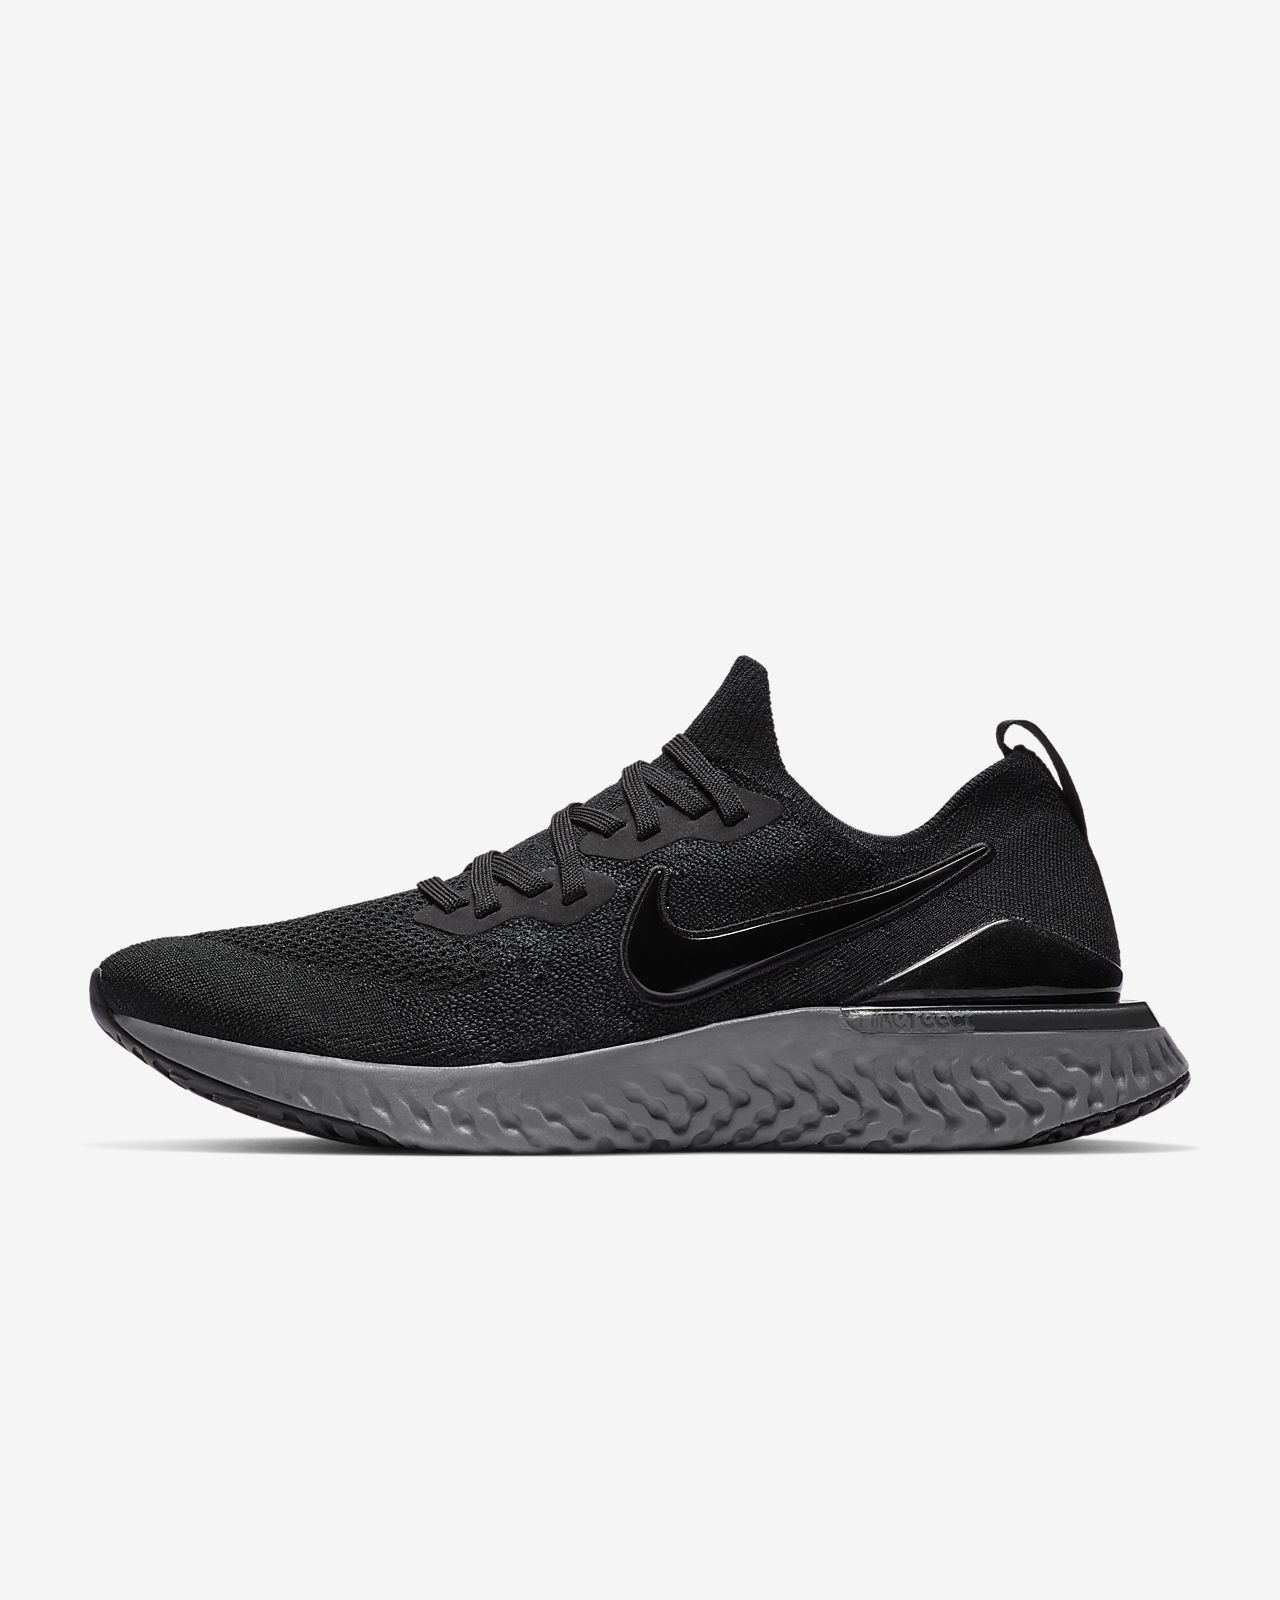 best loved 5ae53 d8a3a Low Resolution Nike Epic React Flyknit 2 Men s Running Shoe Nike Epic React Flyknit  2 Men s Running Shoe